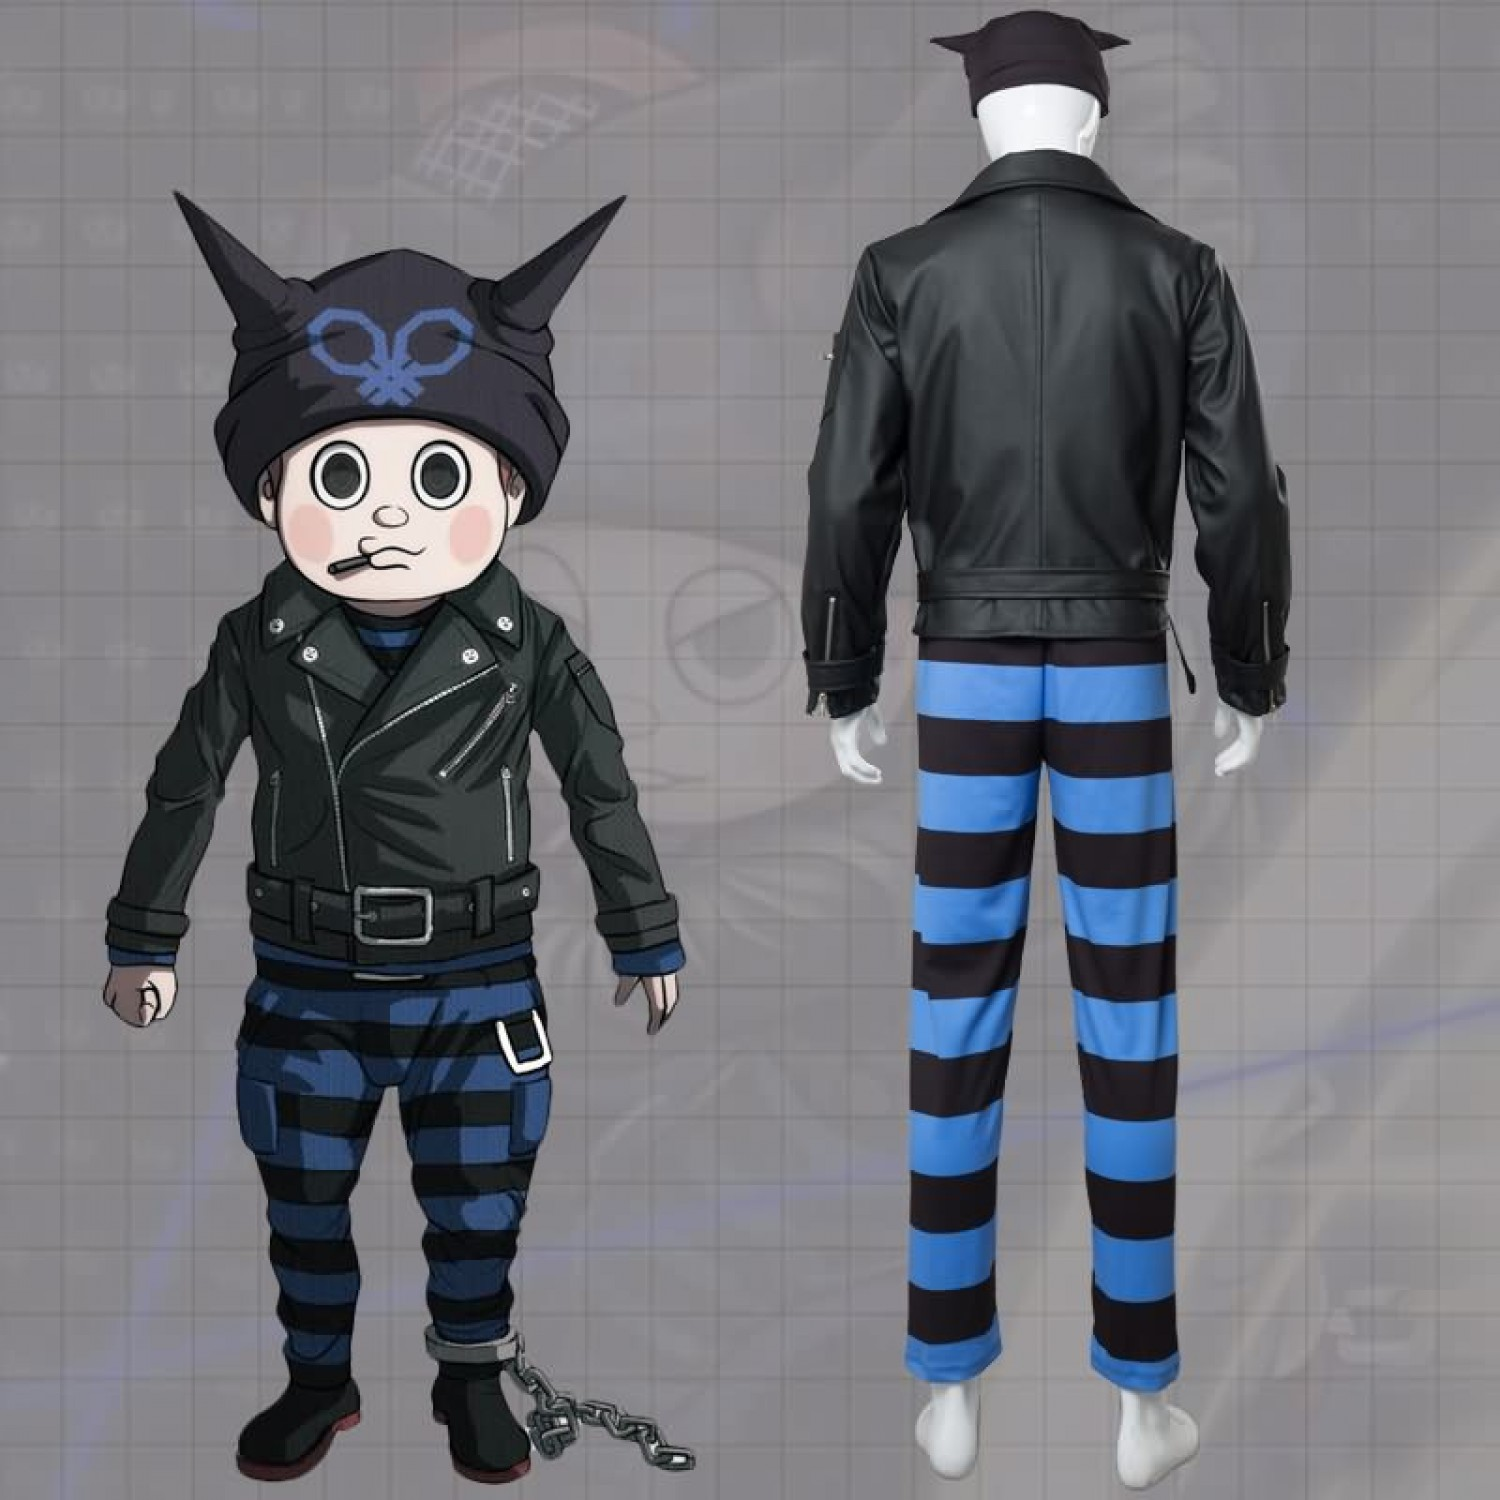 Danganronpa V3 Killing Harmony Ryoma Hoshi Cosplay Costume Free Shipping 99 99 I put in a lot of time and effort making it, so this means a lot to me. killing harmony ryoma hoshi cosplay